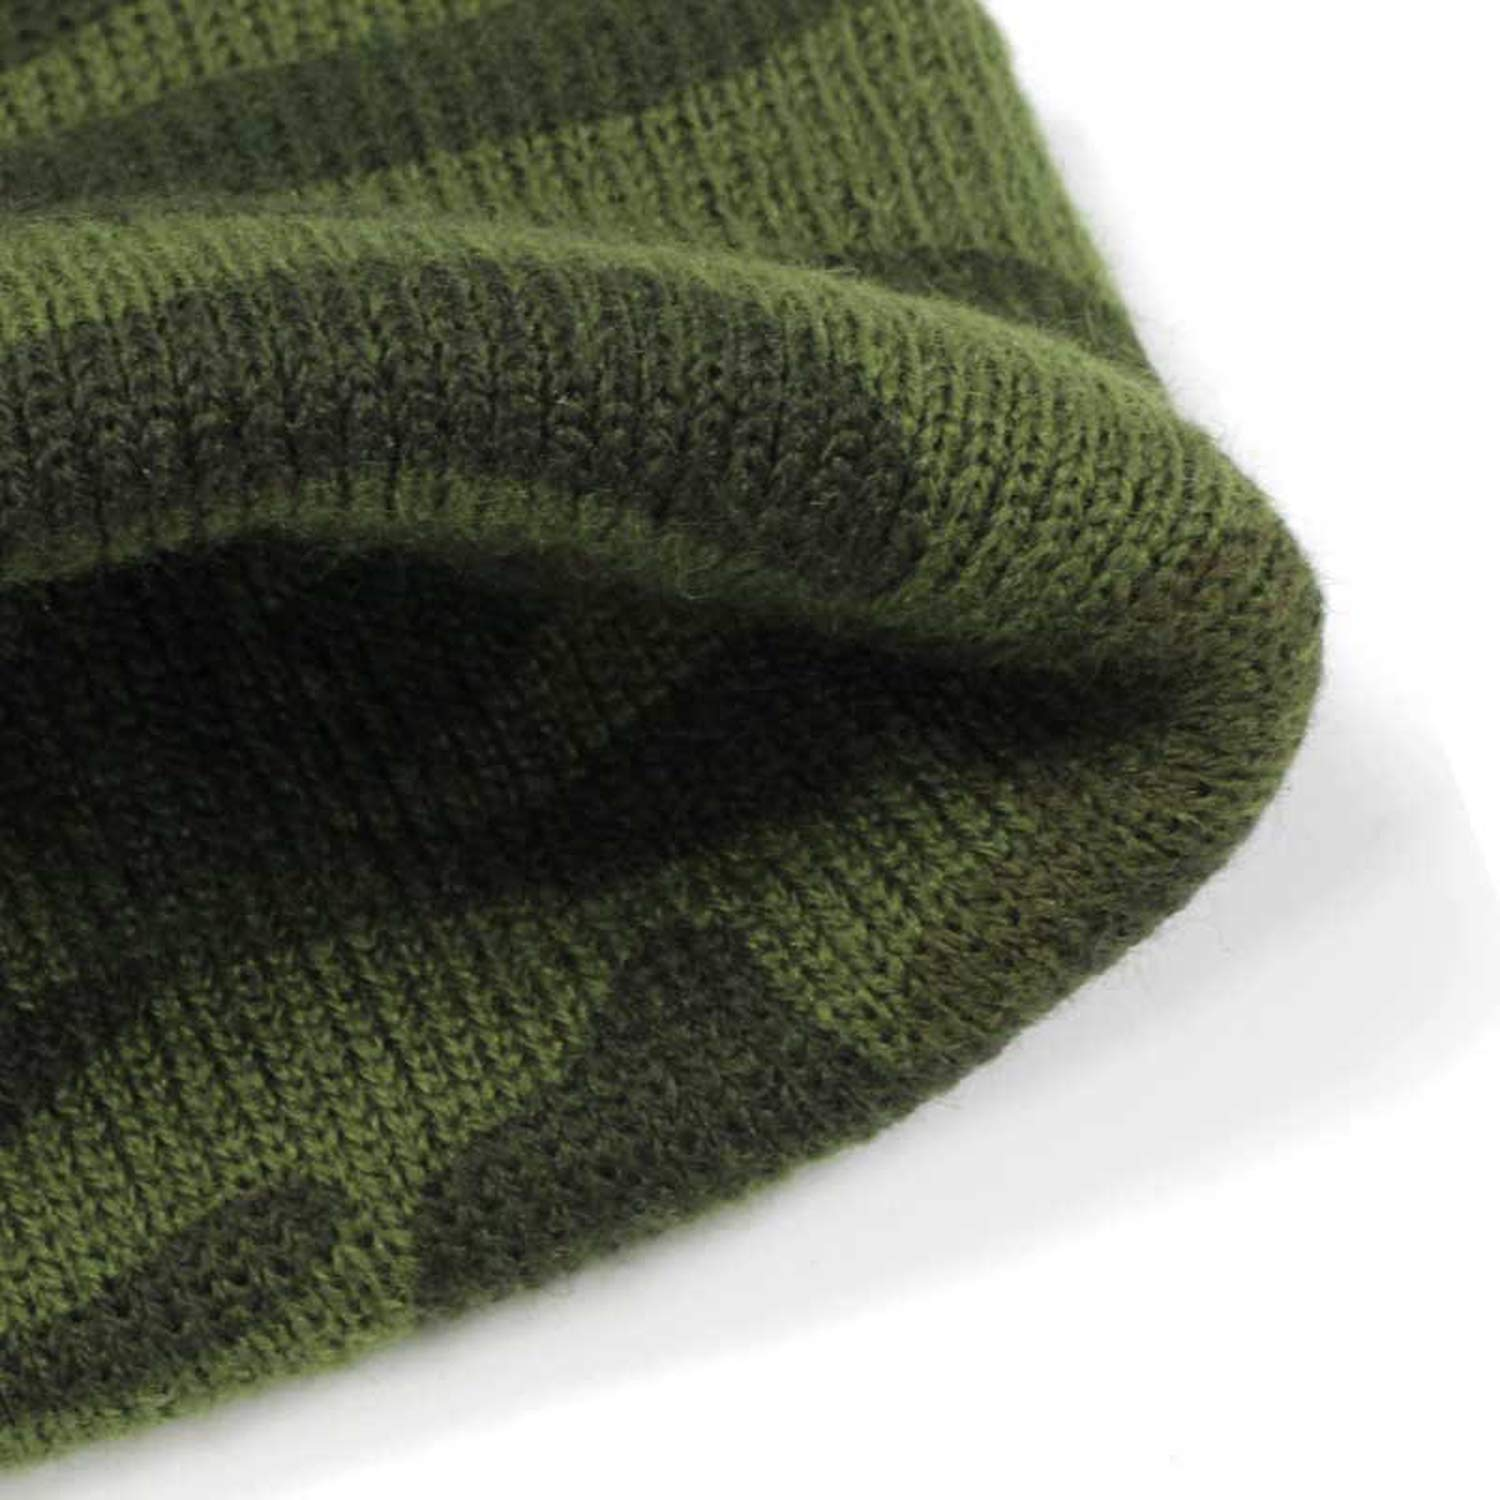 Fenyoung-knitted hat Mens Knit Camouflage Hats Ms Warms Touca Camouflage Warm Green Military Army caps Bone